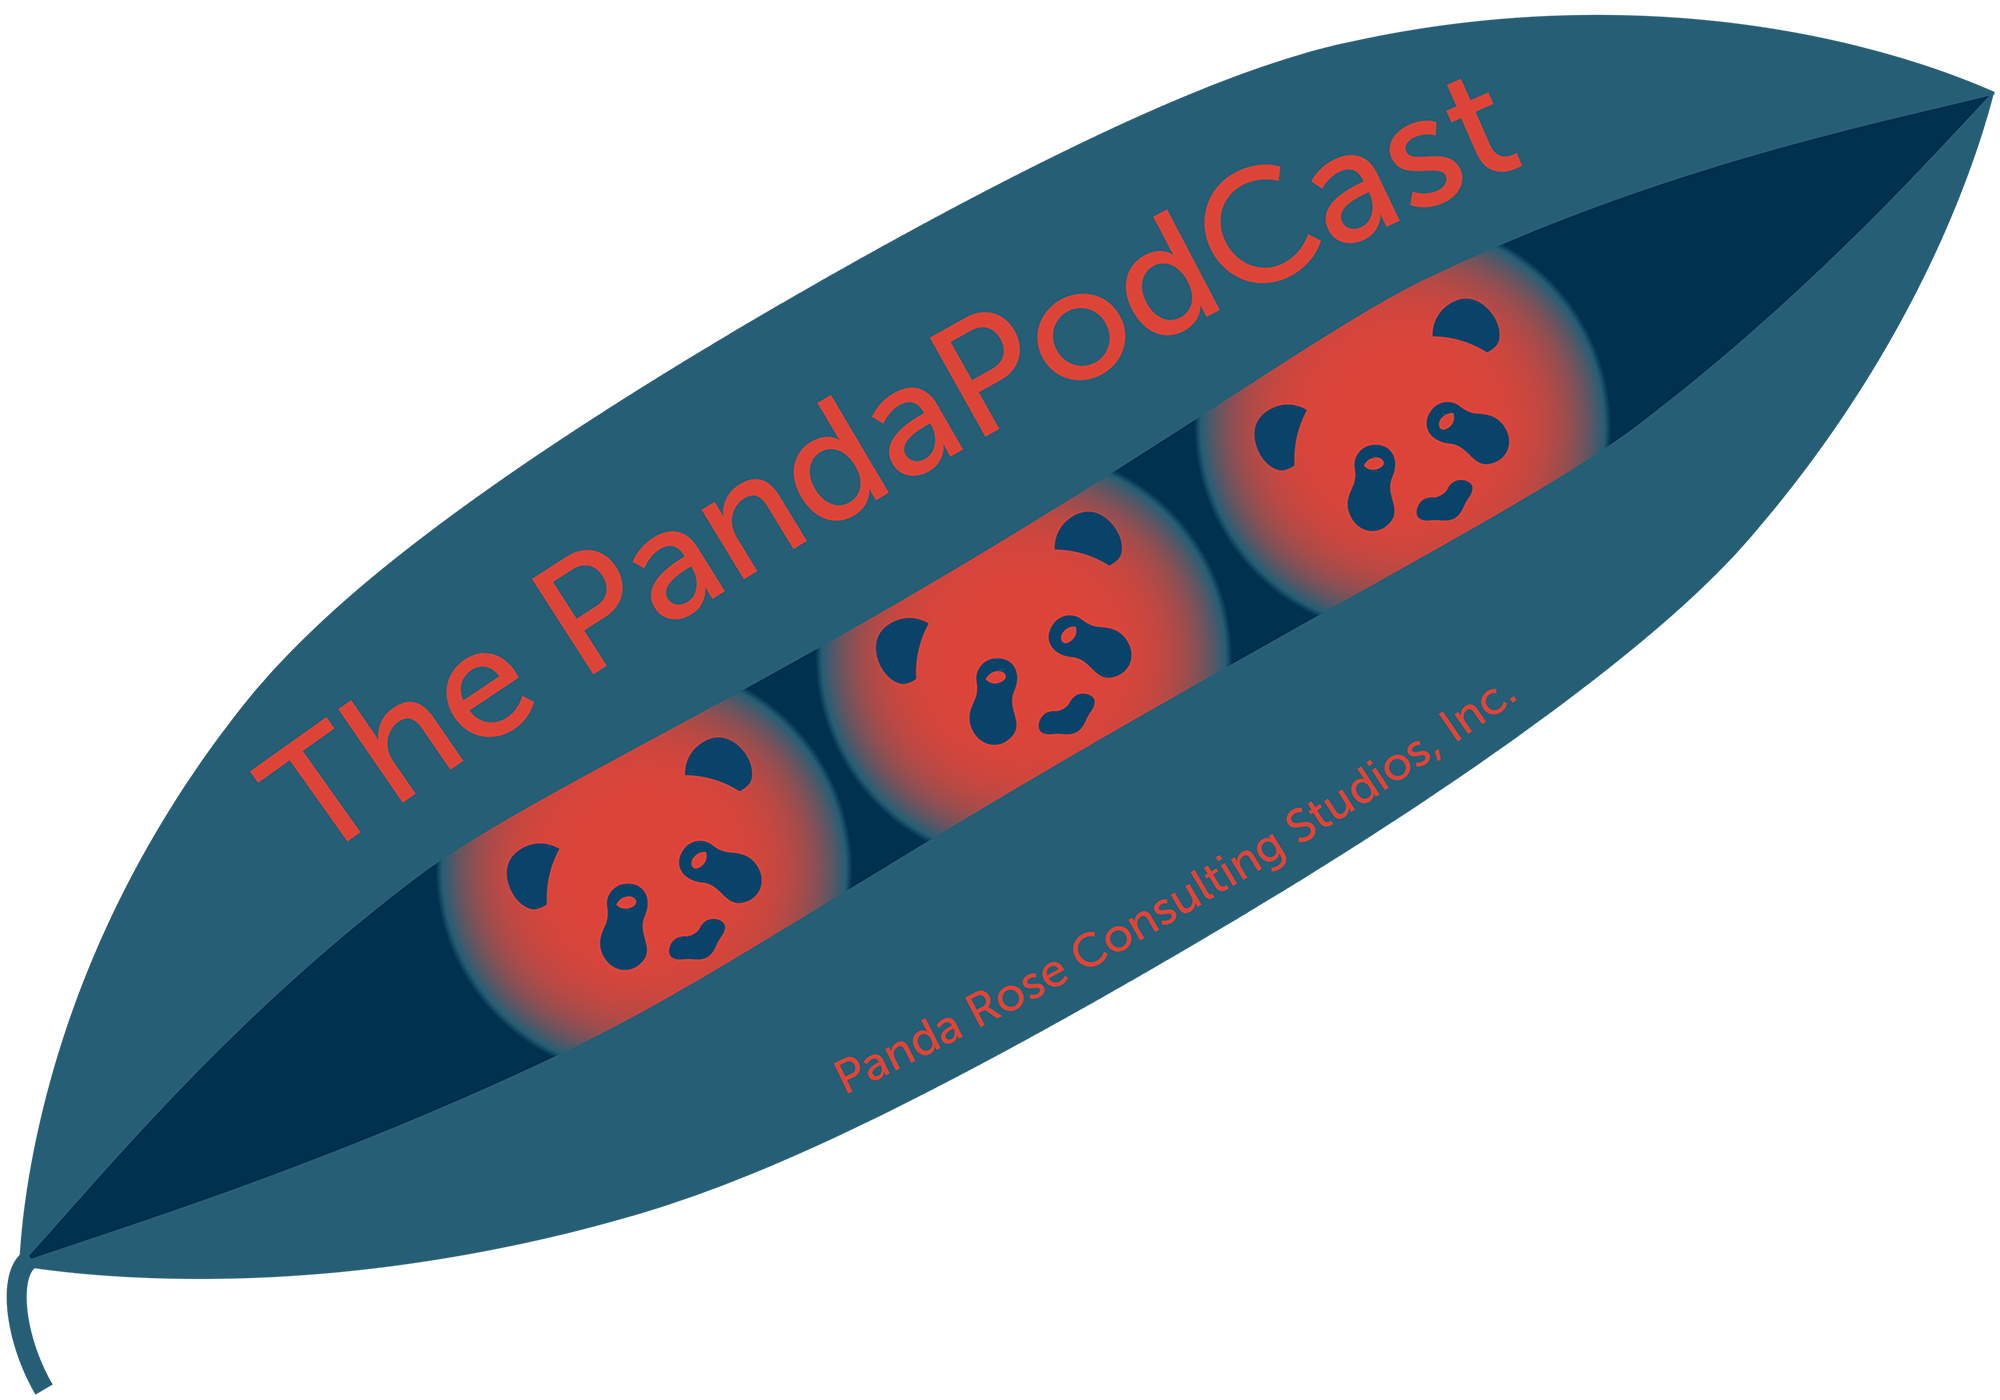 The PandaPodCast